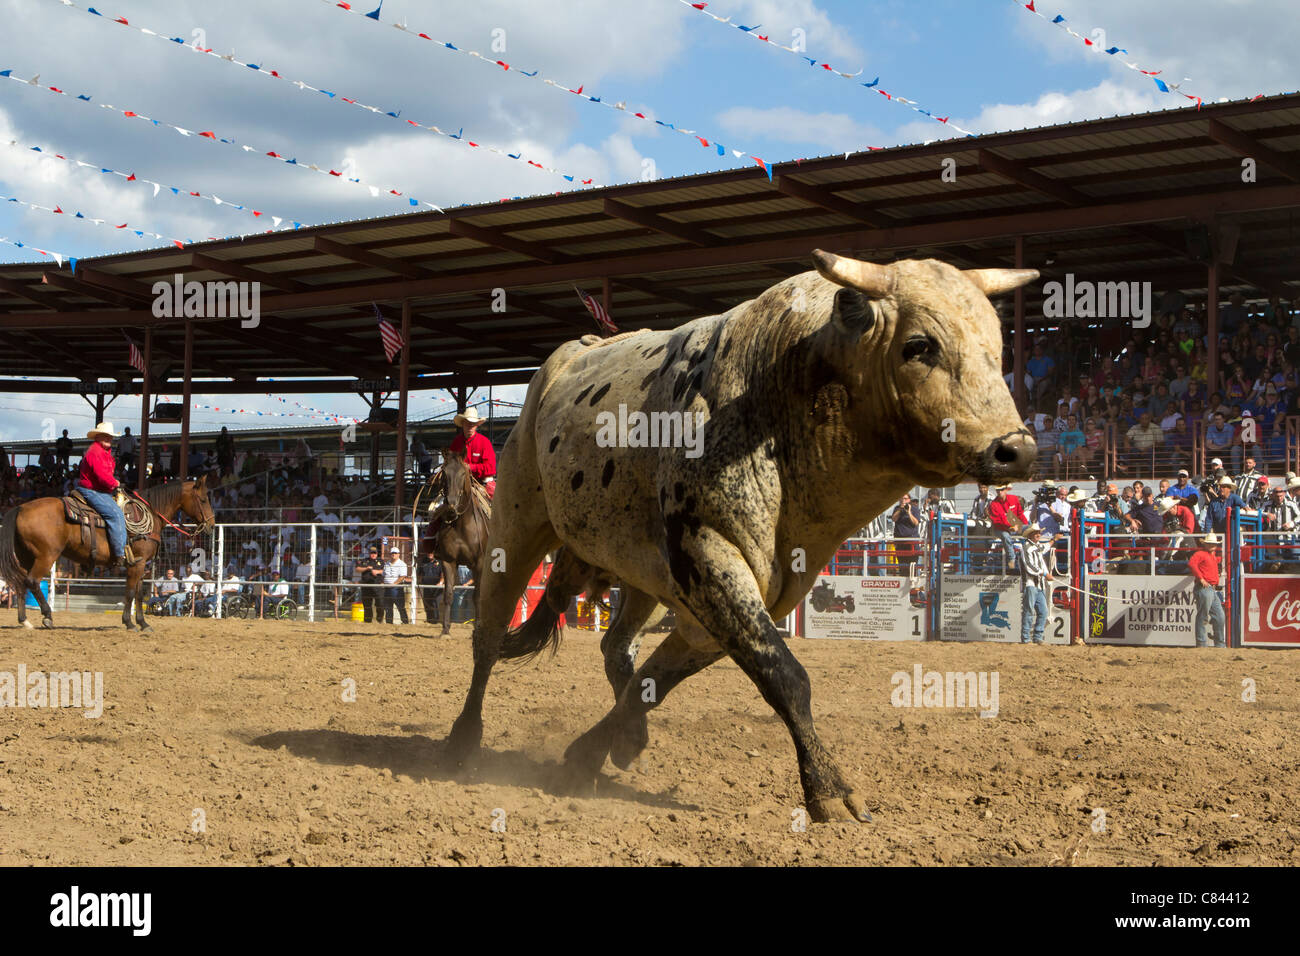 Cattle at the Angola State Prison Rodeo in Louisiana State Penitentiary - Stock Image